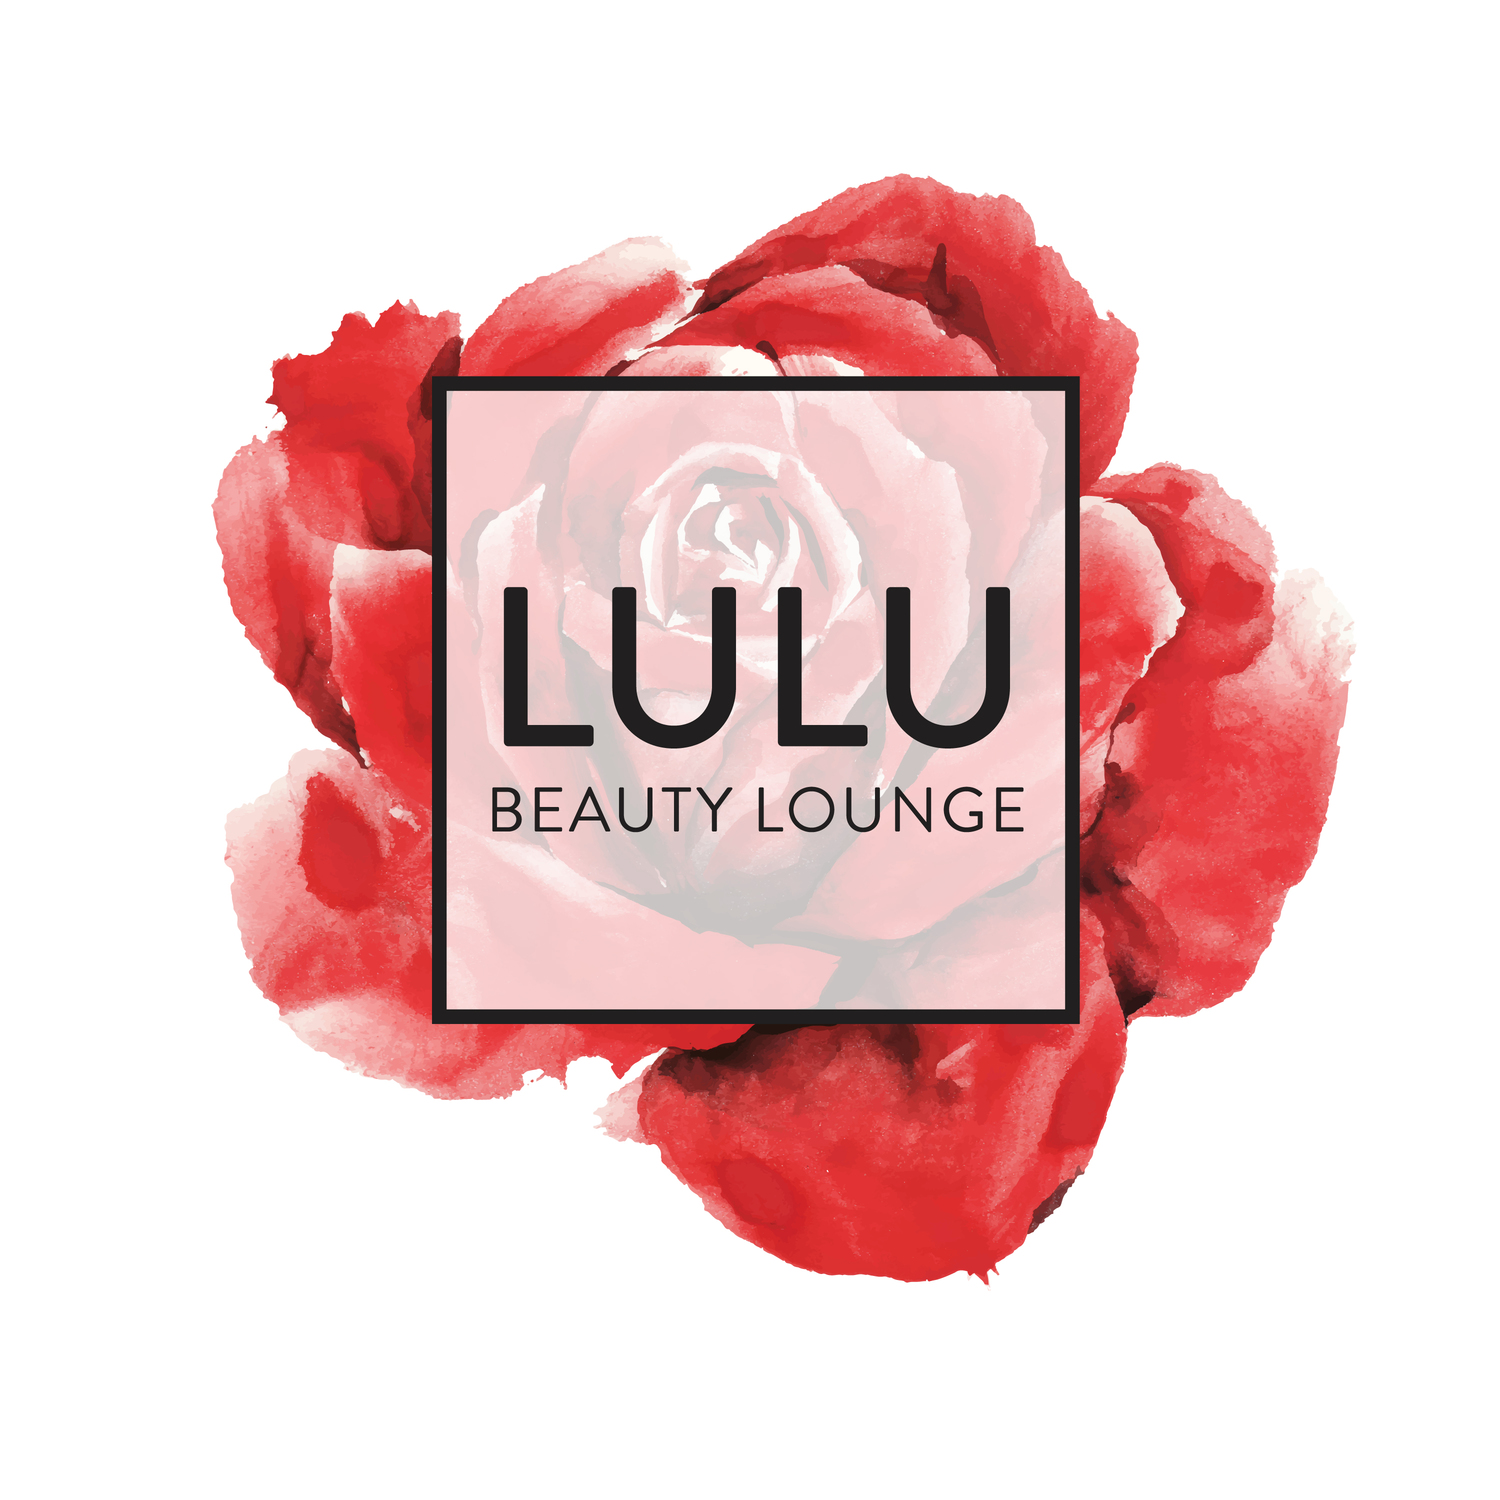 LULU Beauty Lounge